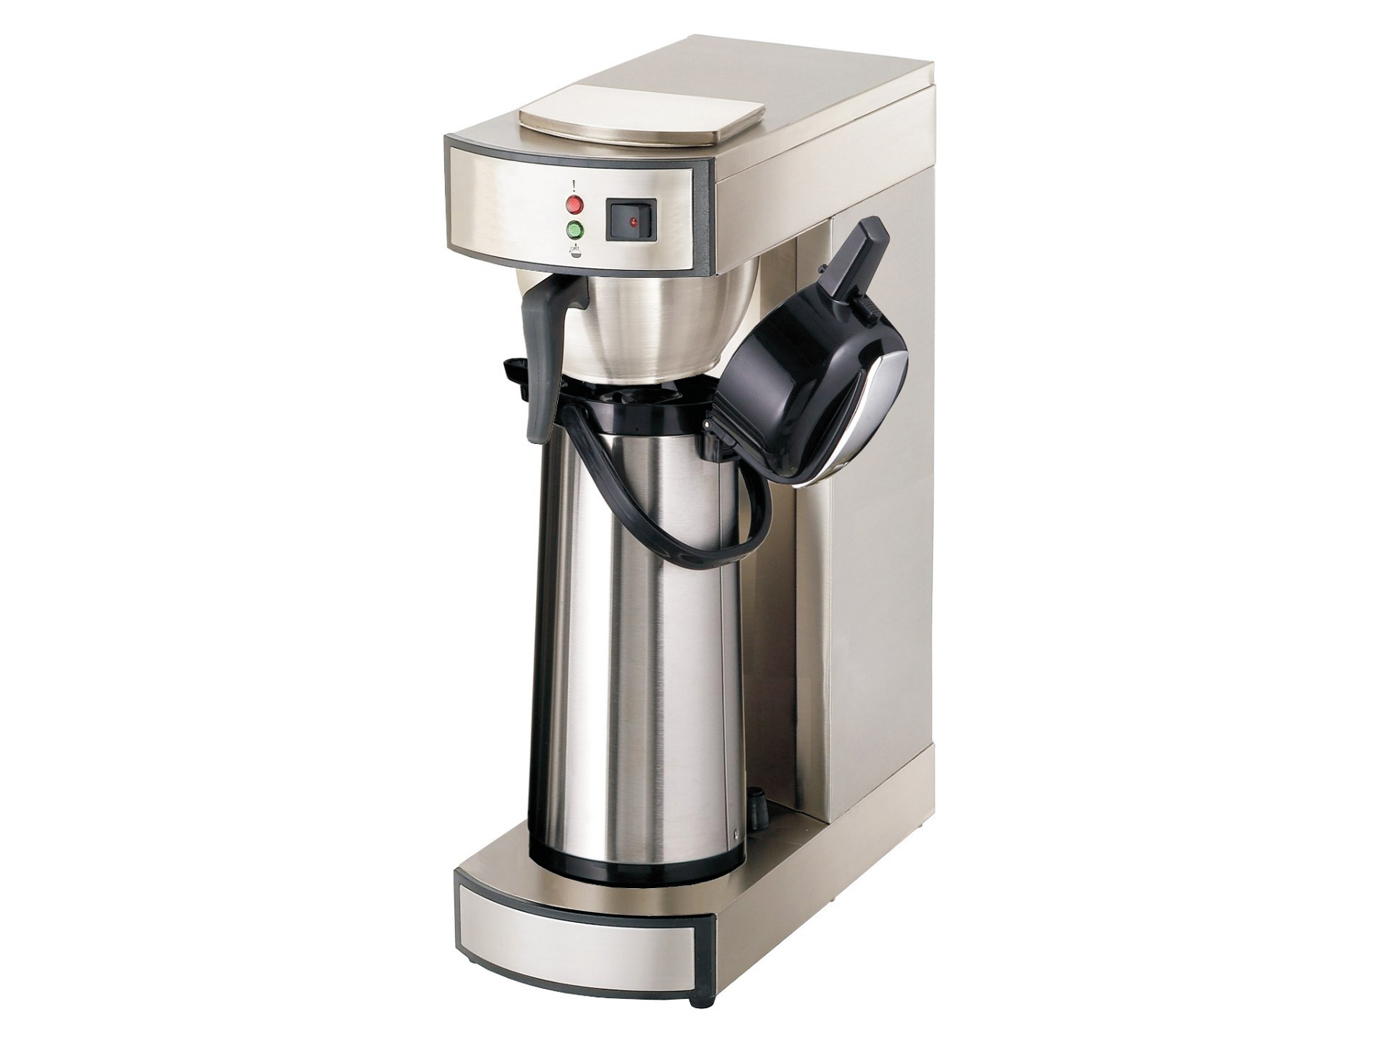 gastro kaffeemaschine thermoskanne 140 tassen std profi filter kaffeemaschine 4251225667035 ebay. Black Bedroom Furniture Sets. Home Design Ideas